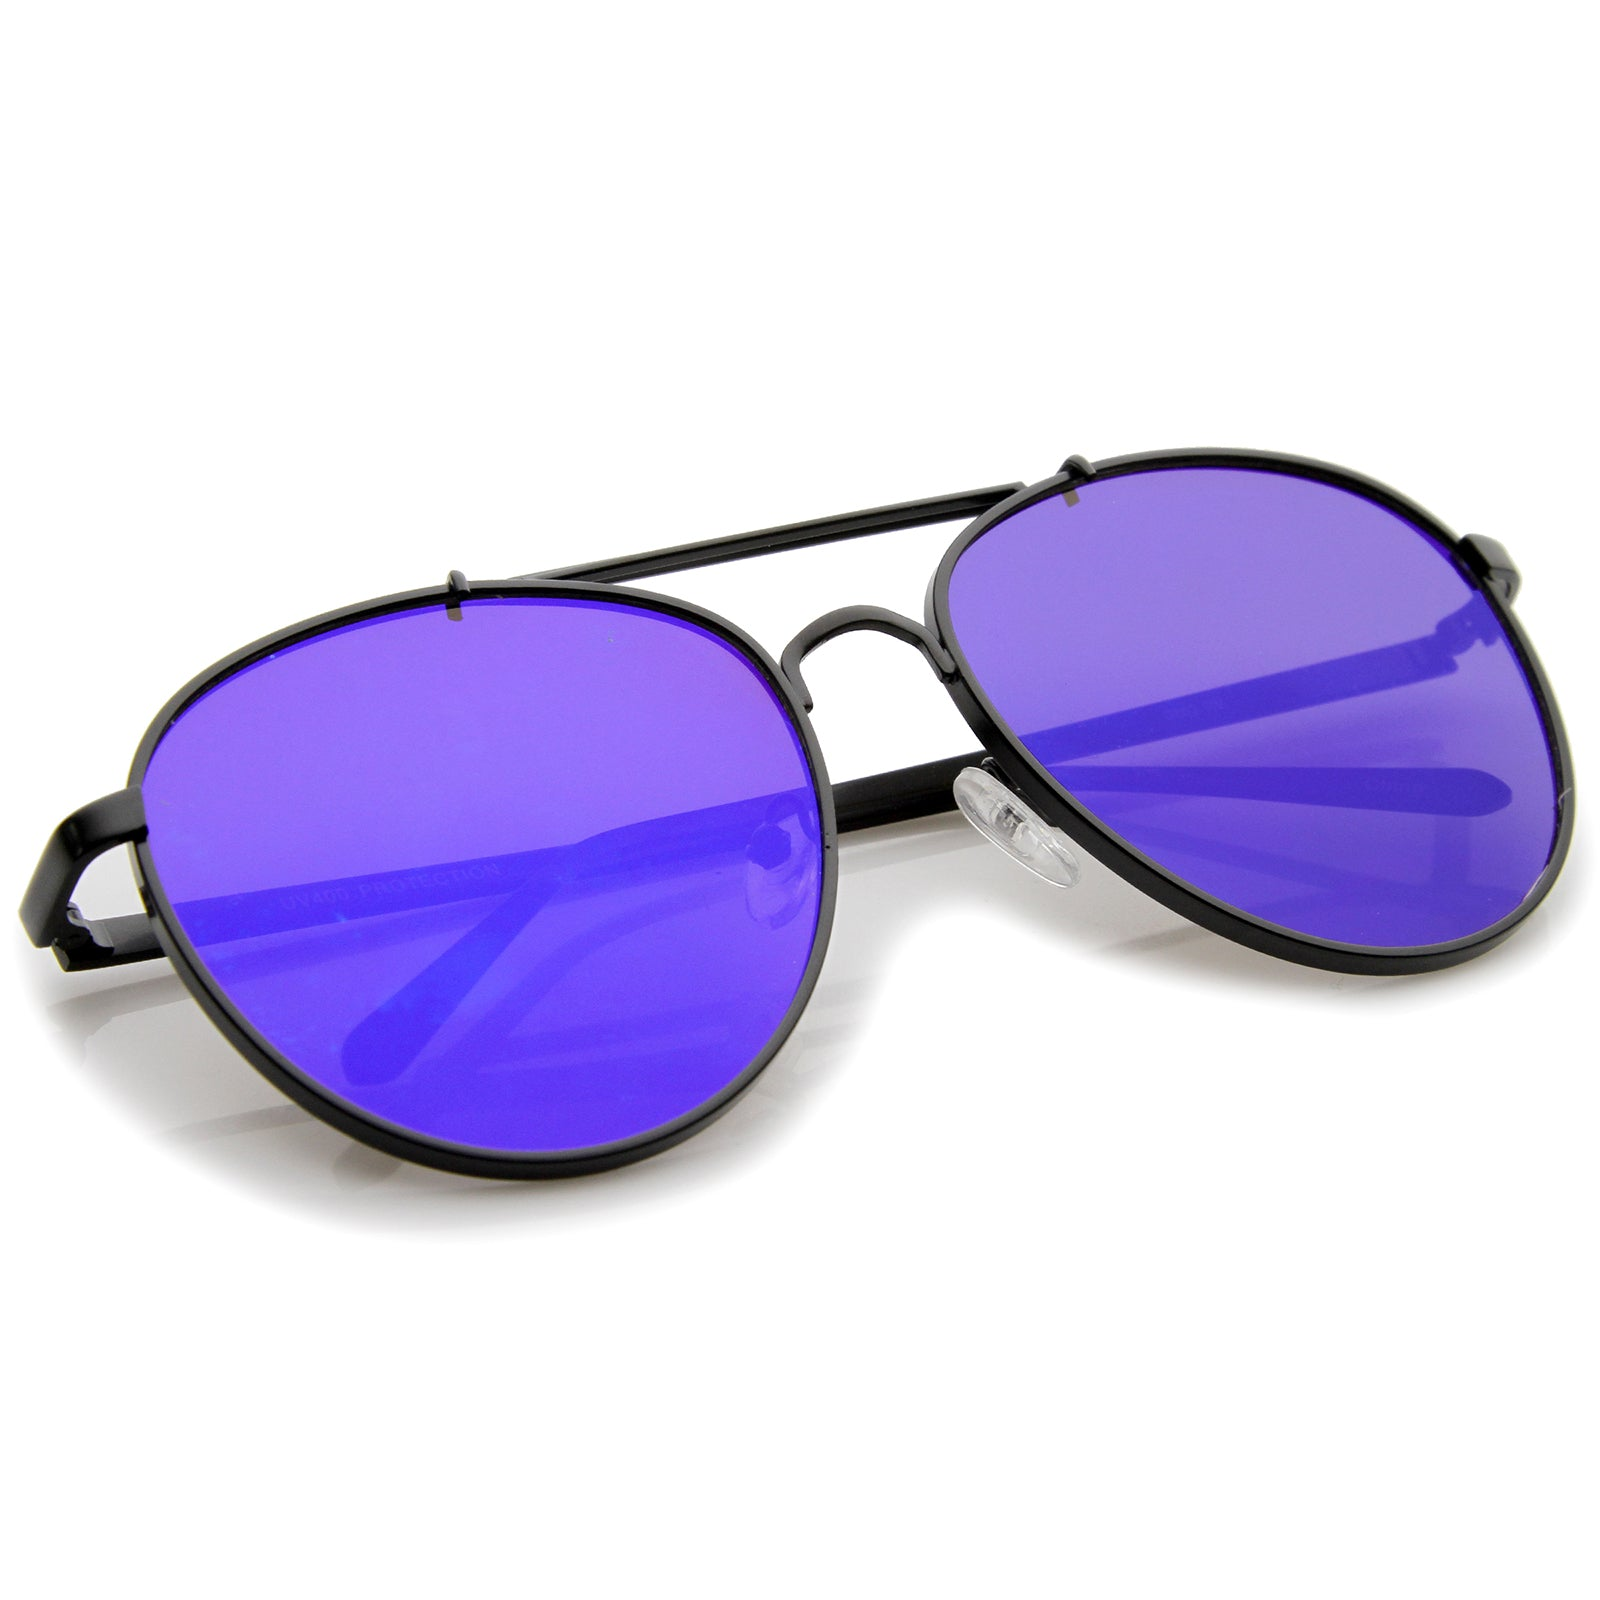 Large Metal Teardrop Double Bridge Mirrored Flat Lens Aviator Sunglasses 60mm - sunglass.la - 12